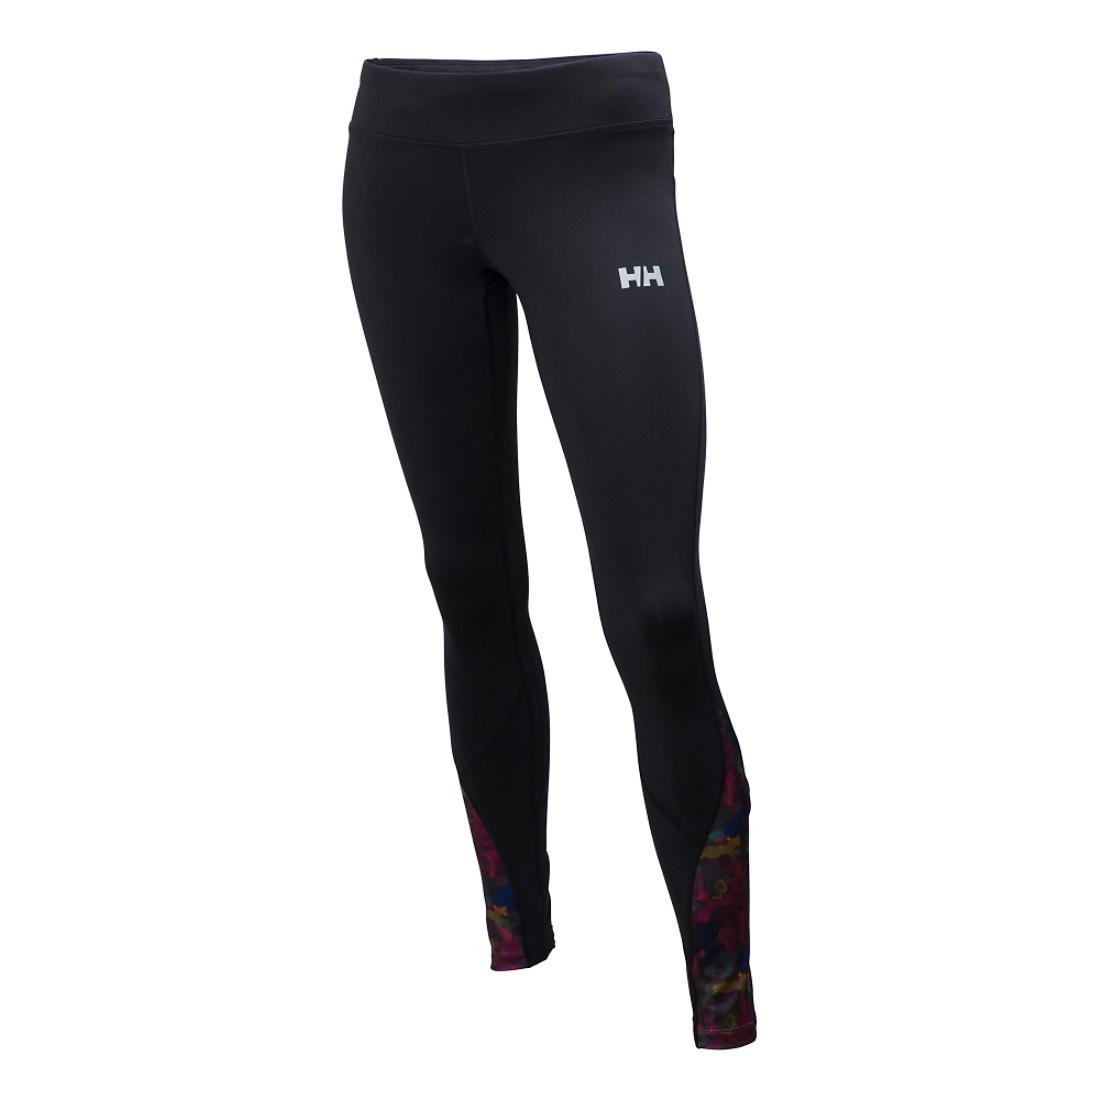 Helly Hansen Damen Leggings W Aspire Tights